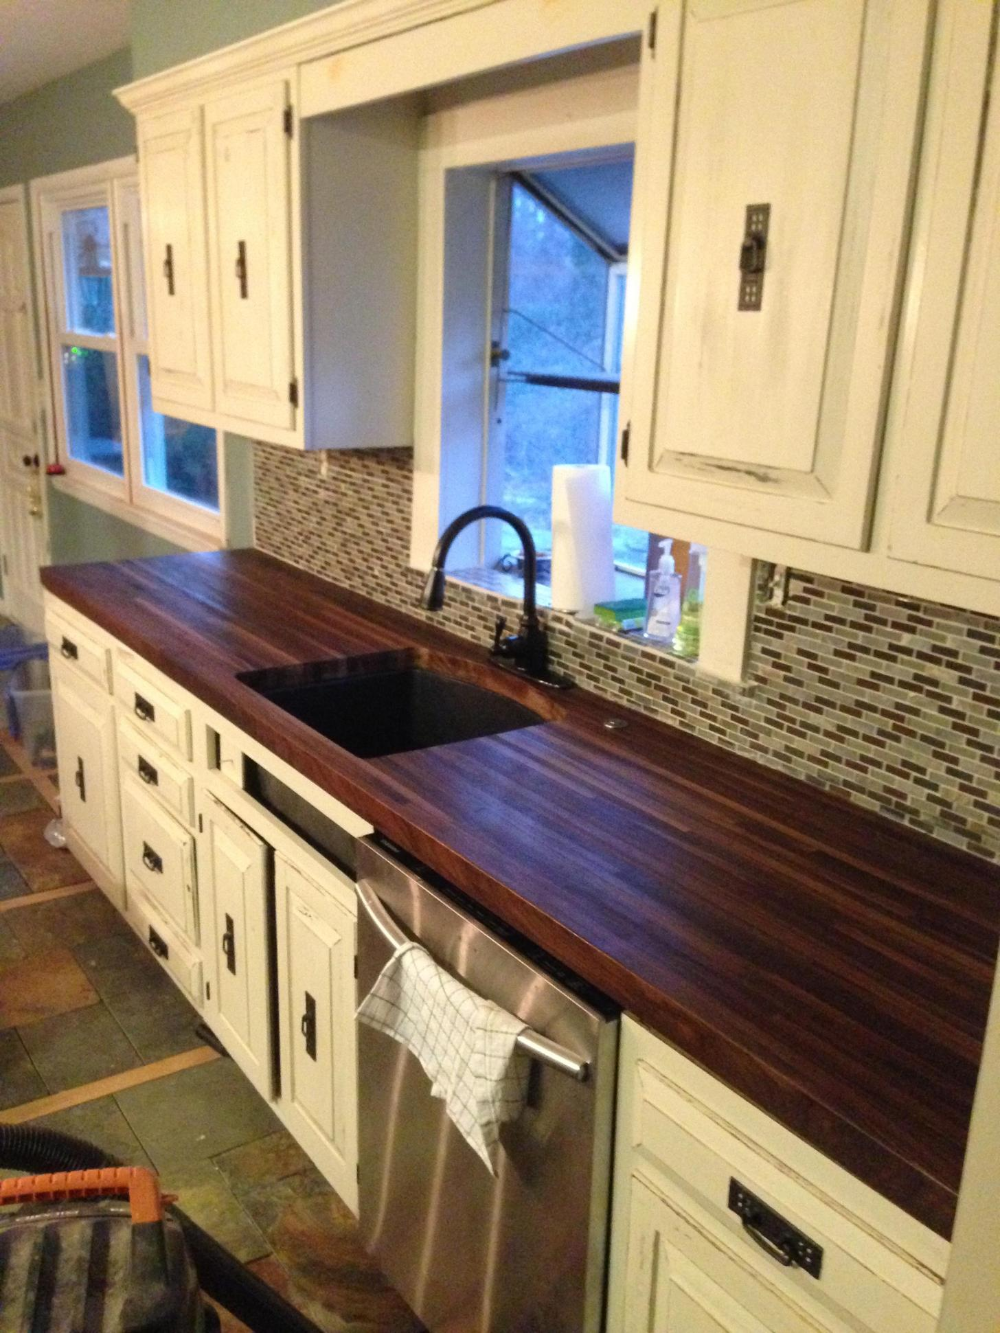 Built A Pair Of Black Walnut Butcher Block Countertops To Replace The Awful In 2020 Walnut Butcher Block Countertops Kitchen Countertops Laminate Kitchen Remodel Small